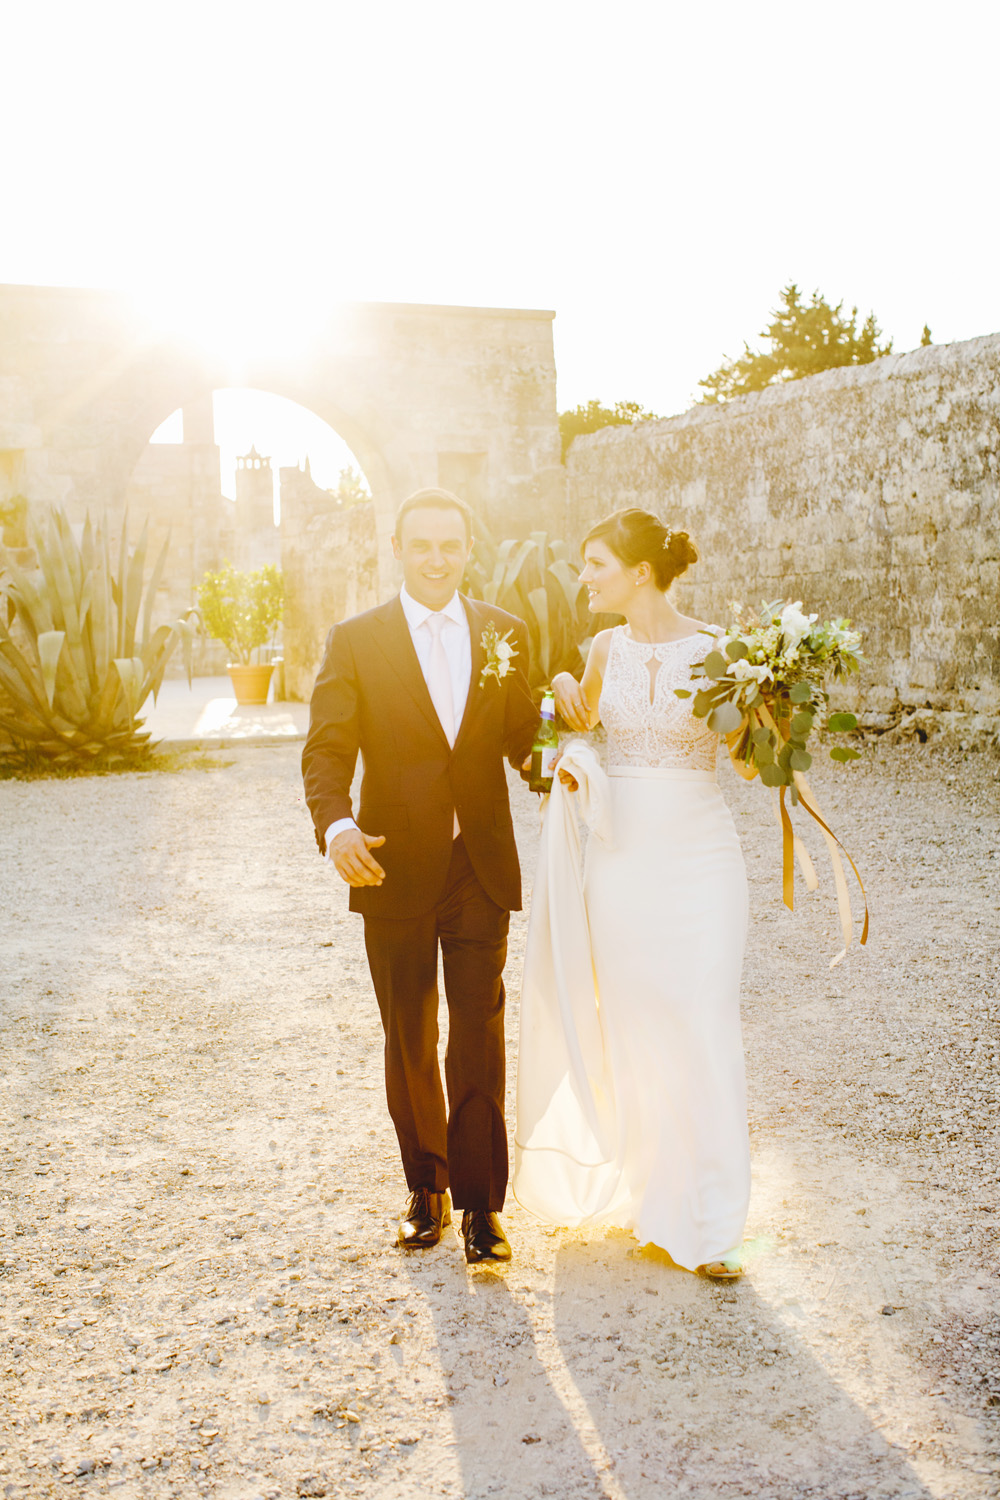 Les Amis Photo_Destination Wedding Photographer_Puglia Wedding_Masseria Torre Ruggeri_NICMATT_362.jpg